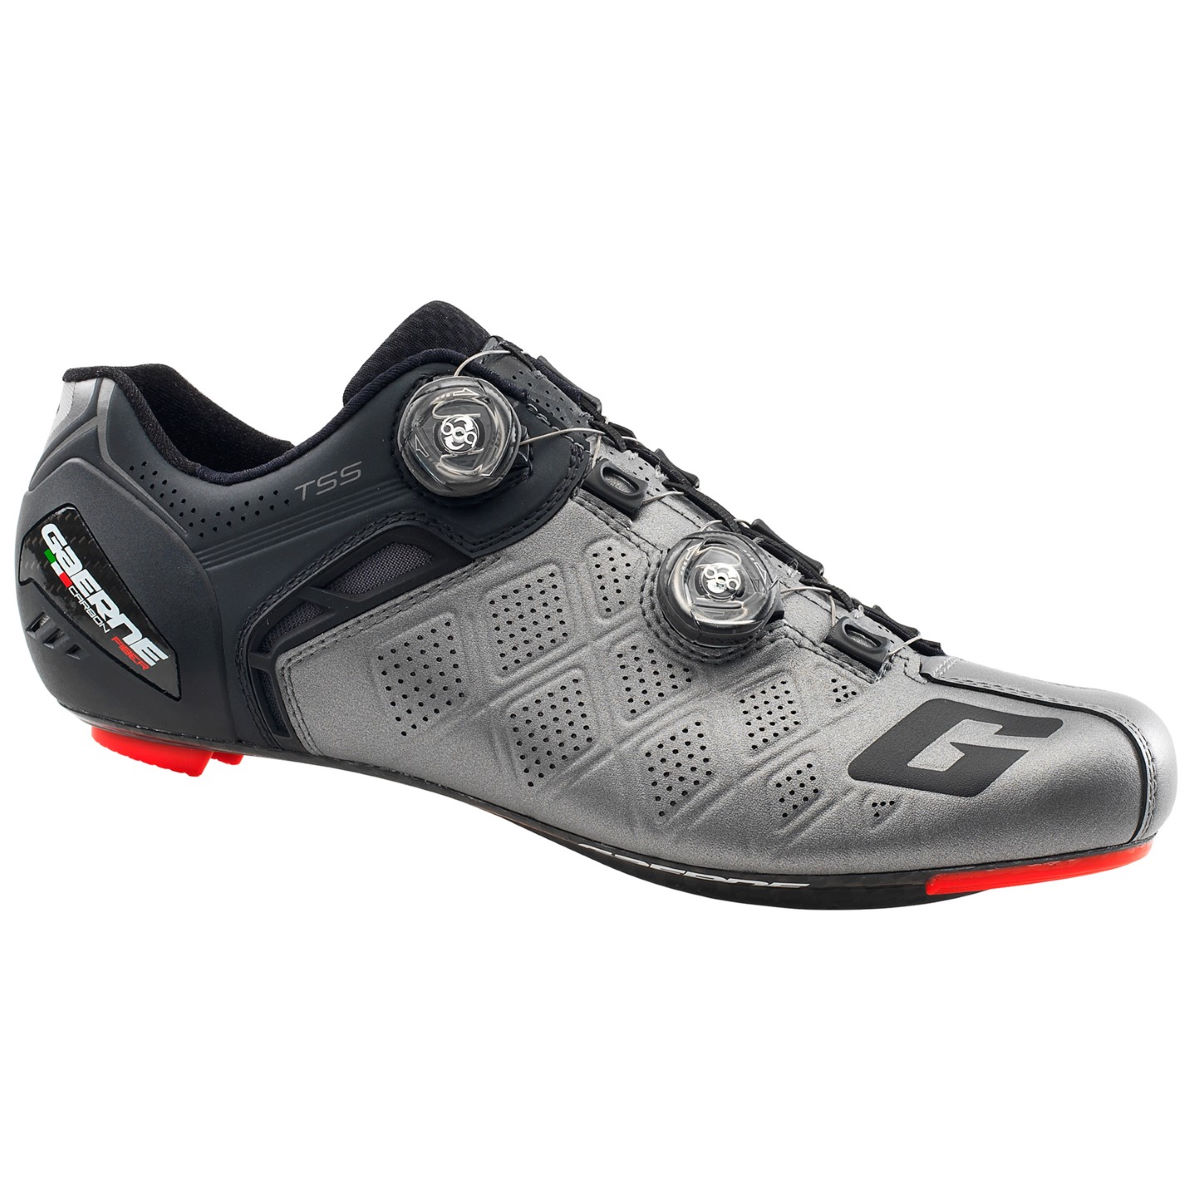 Chaussures de route Gaerne Carbon Stilo+ SPD-SL - EU 40 Anthrac